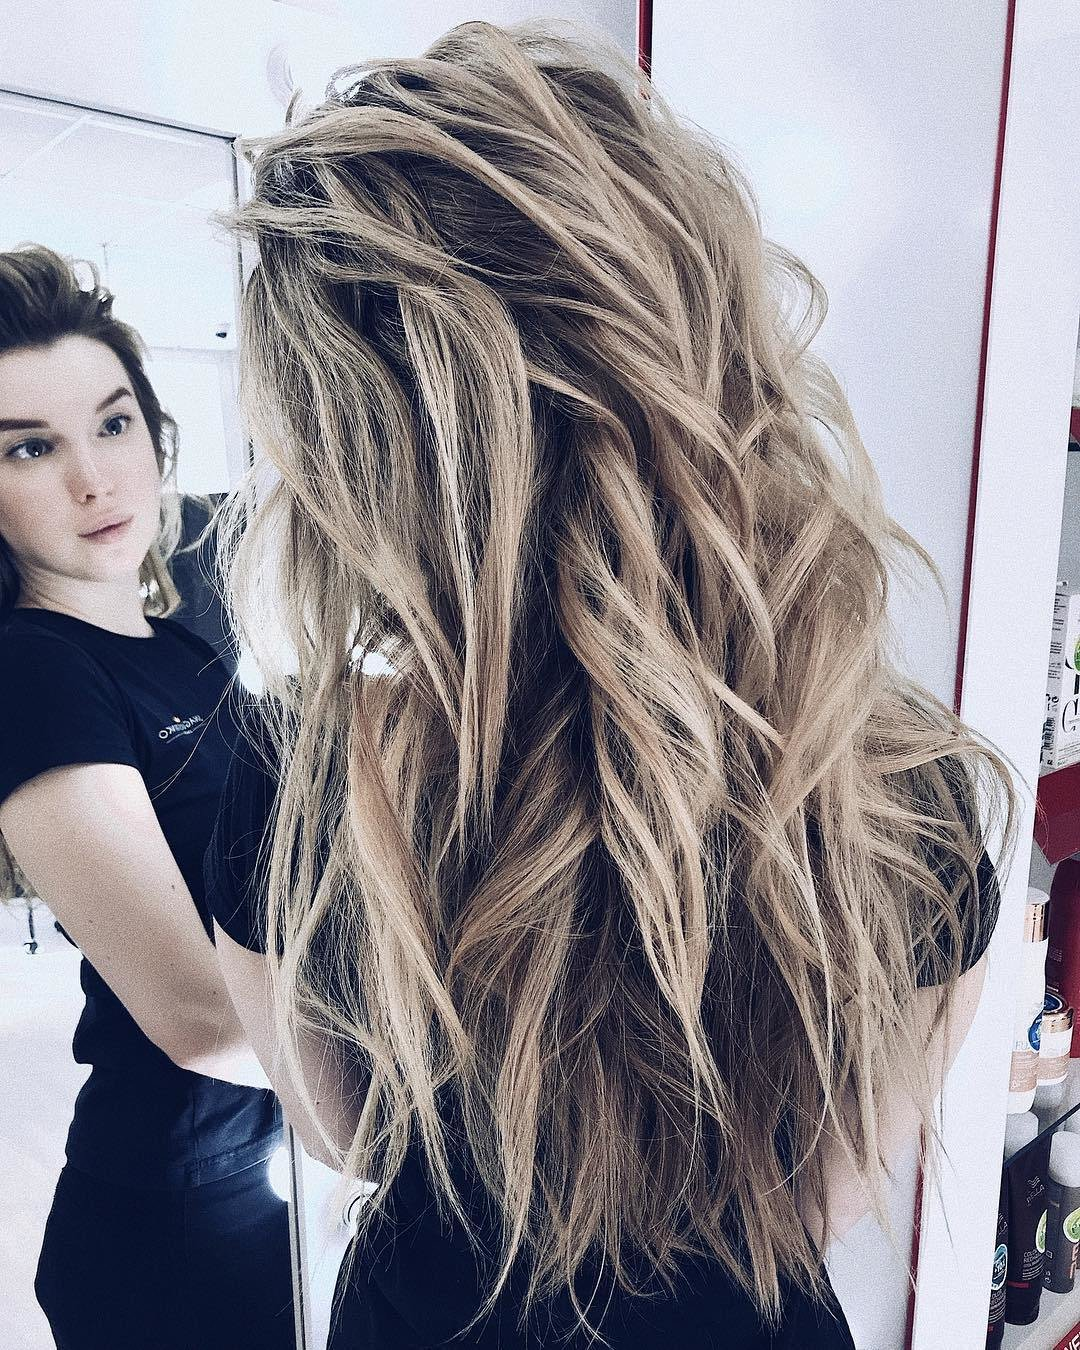 The Best 10 Gorgeous Long Wavy Perm Hairstyles Long Hair Styles 2019 Pictures